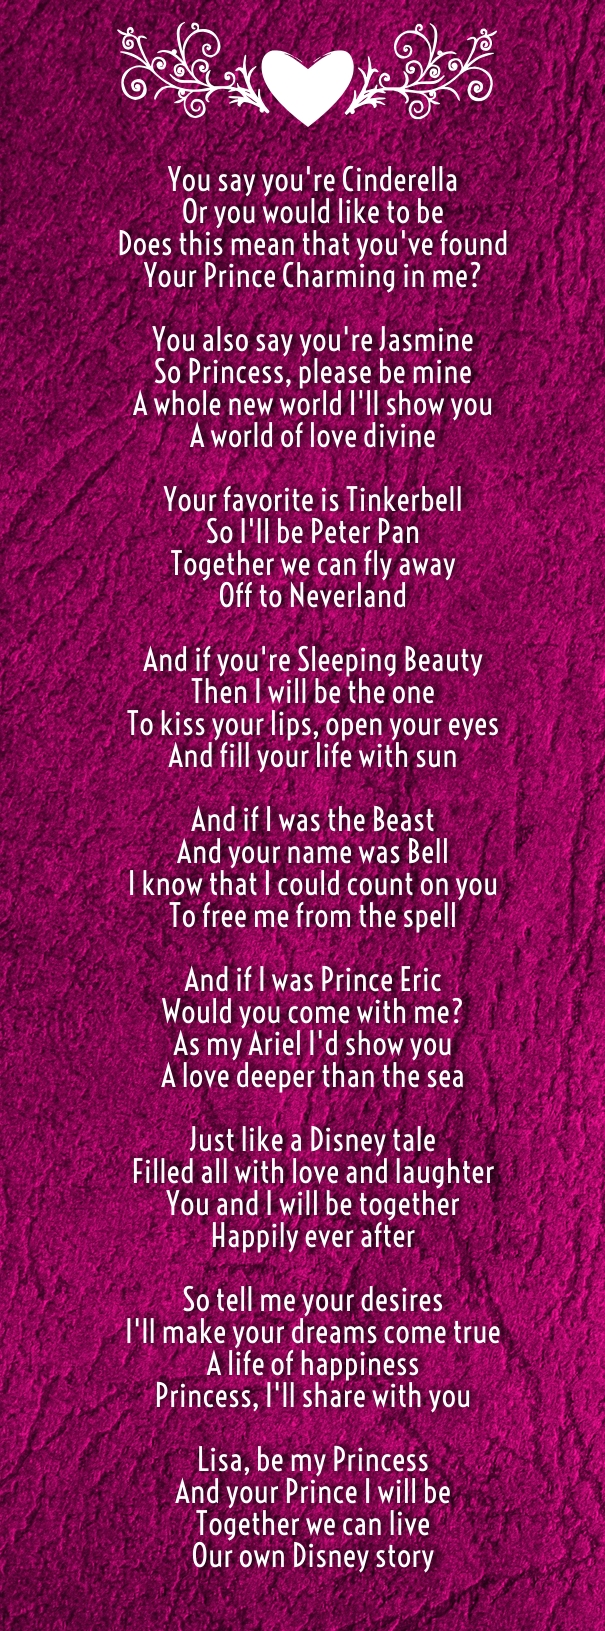 cinderella poem Each poem is a parody of a traditional folk tale he provides a re-interpretation and surprise ending instead of the traditional happily-ever-after ending this poem shows a different side of the cinderella story that everyone knows.